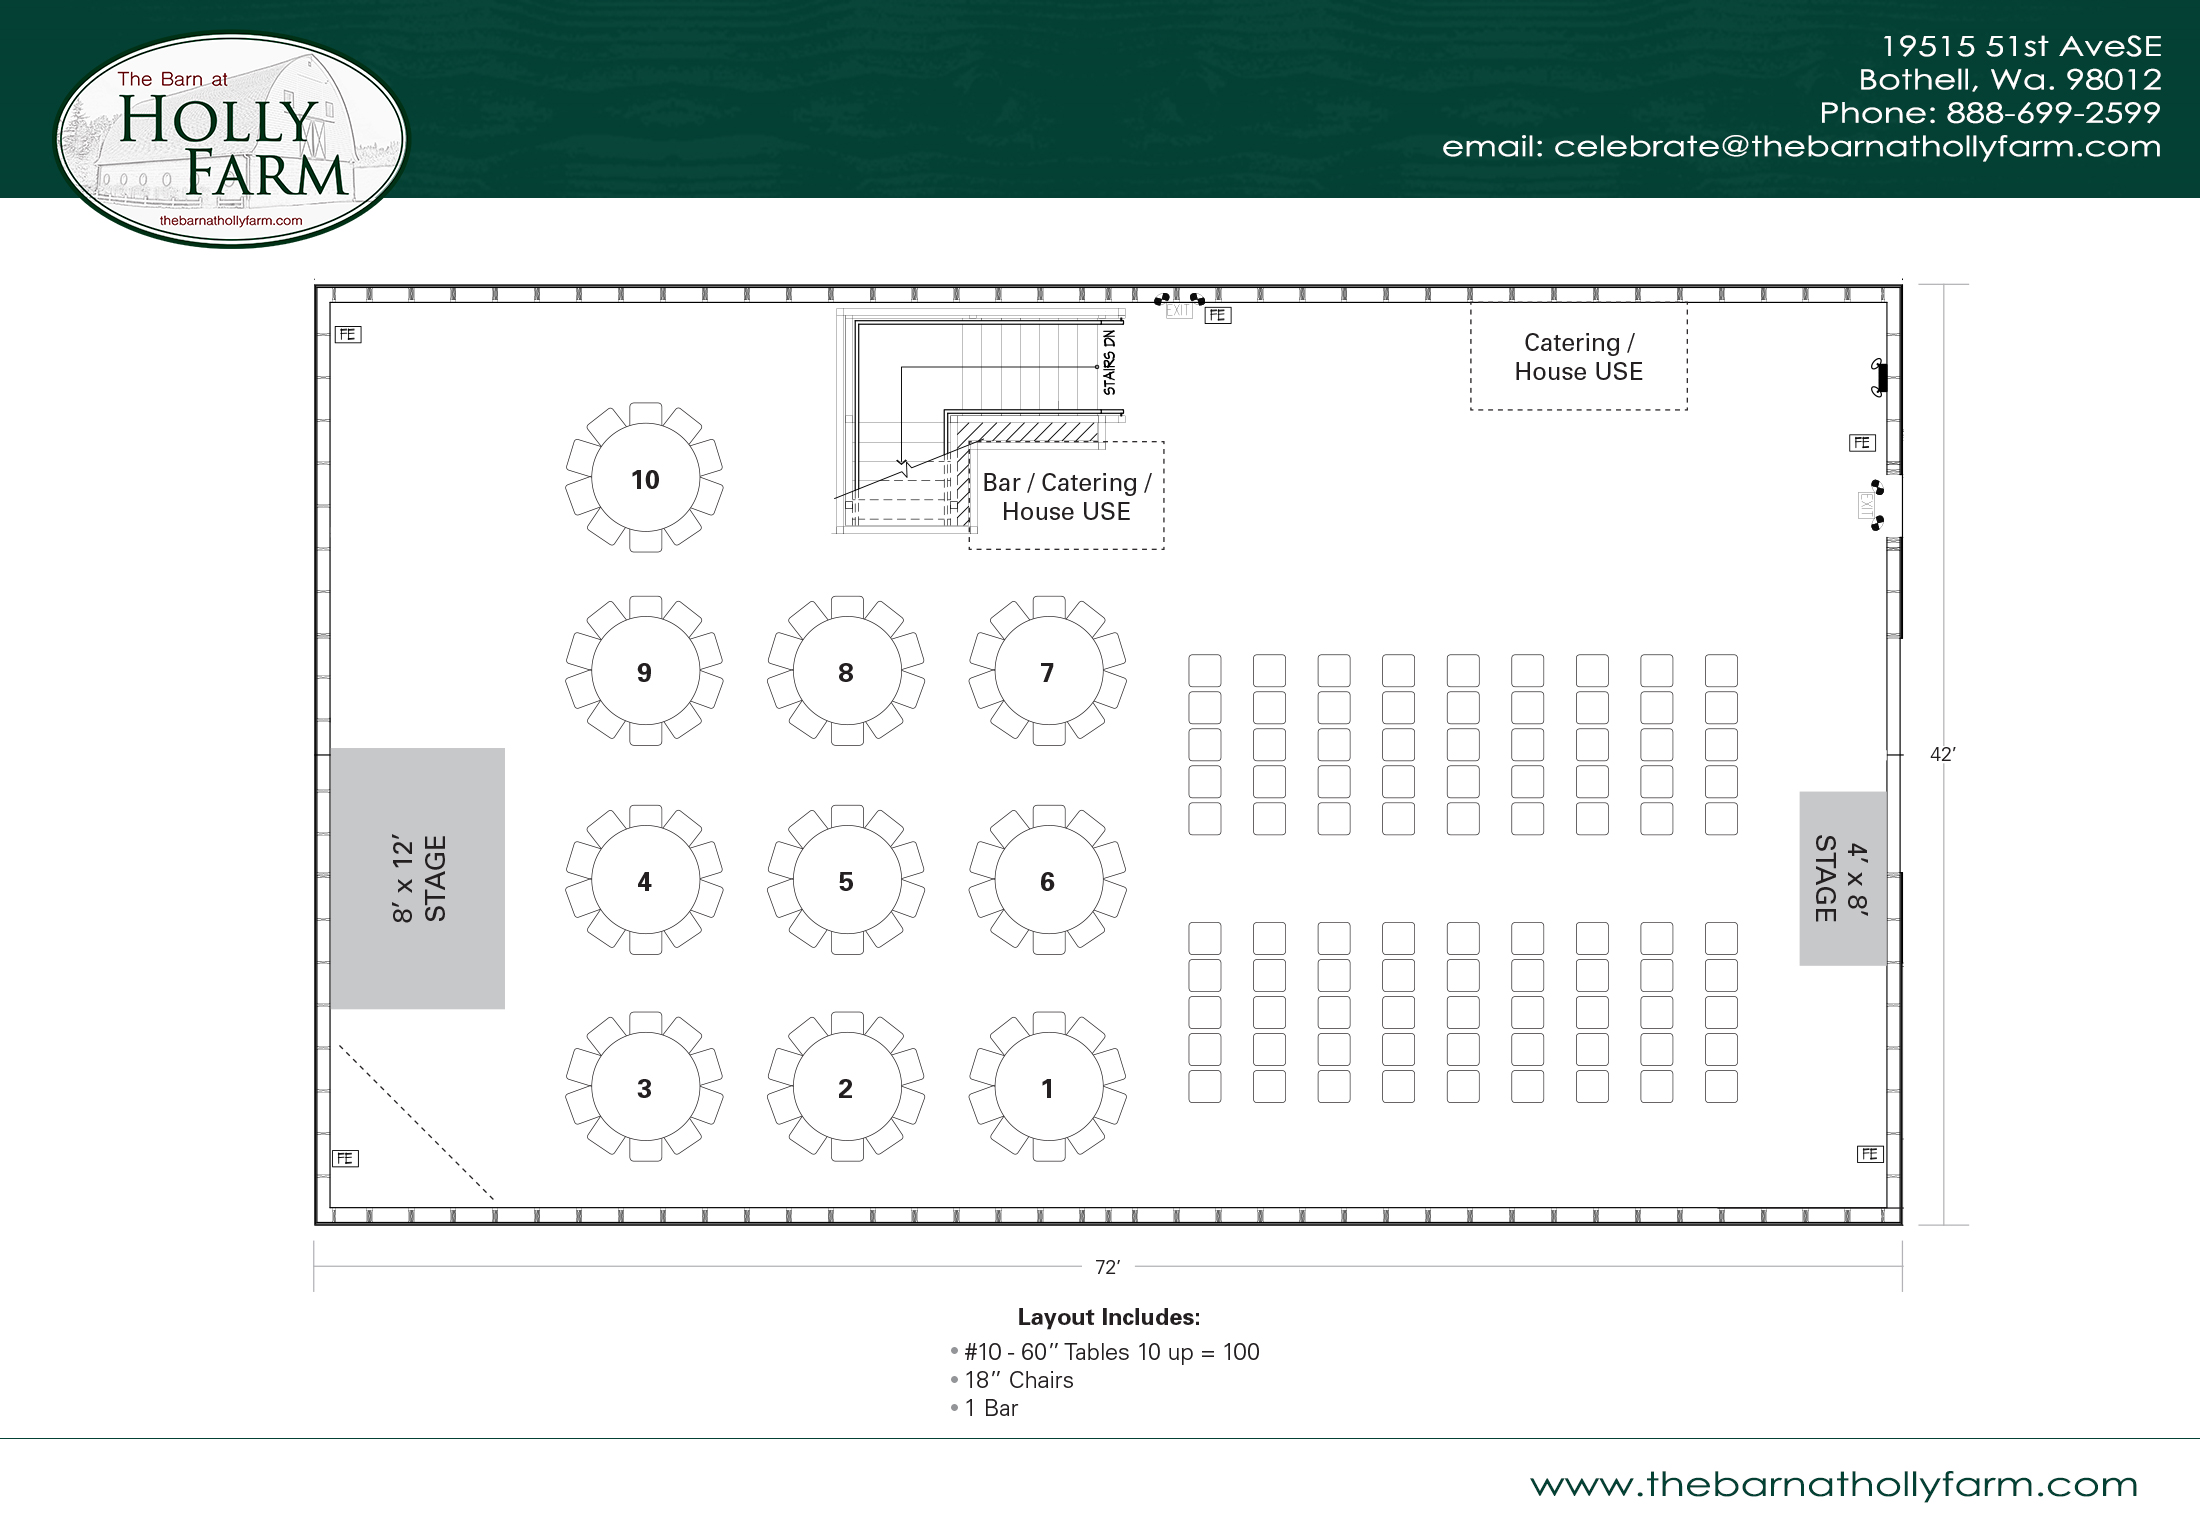 View The Barn At Holly Farm Floor Plans Customizable For Your Event